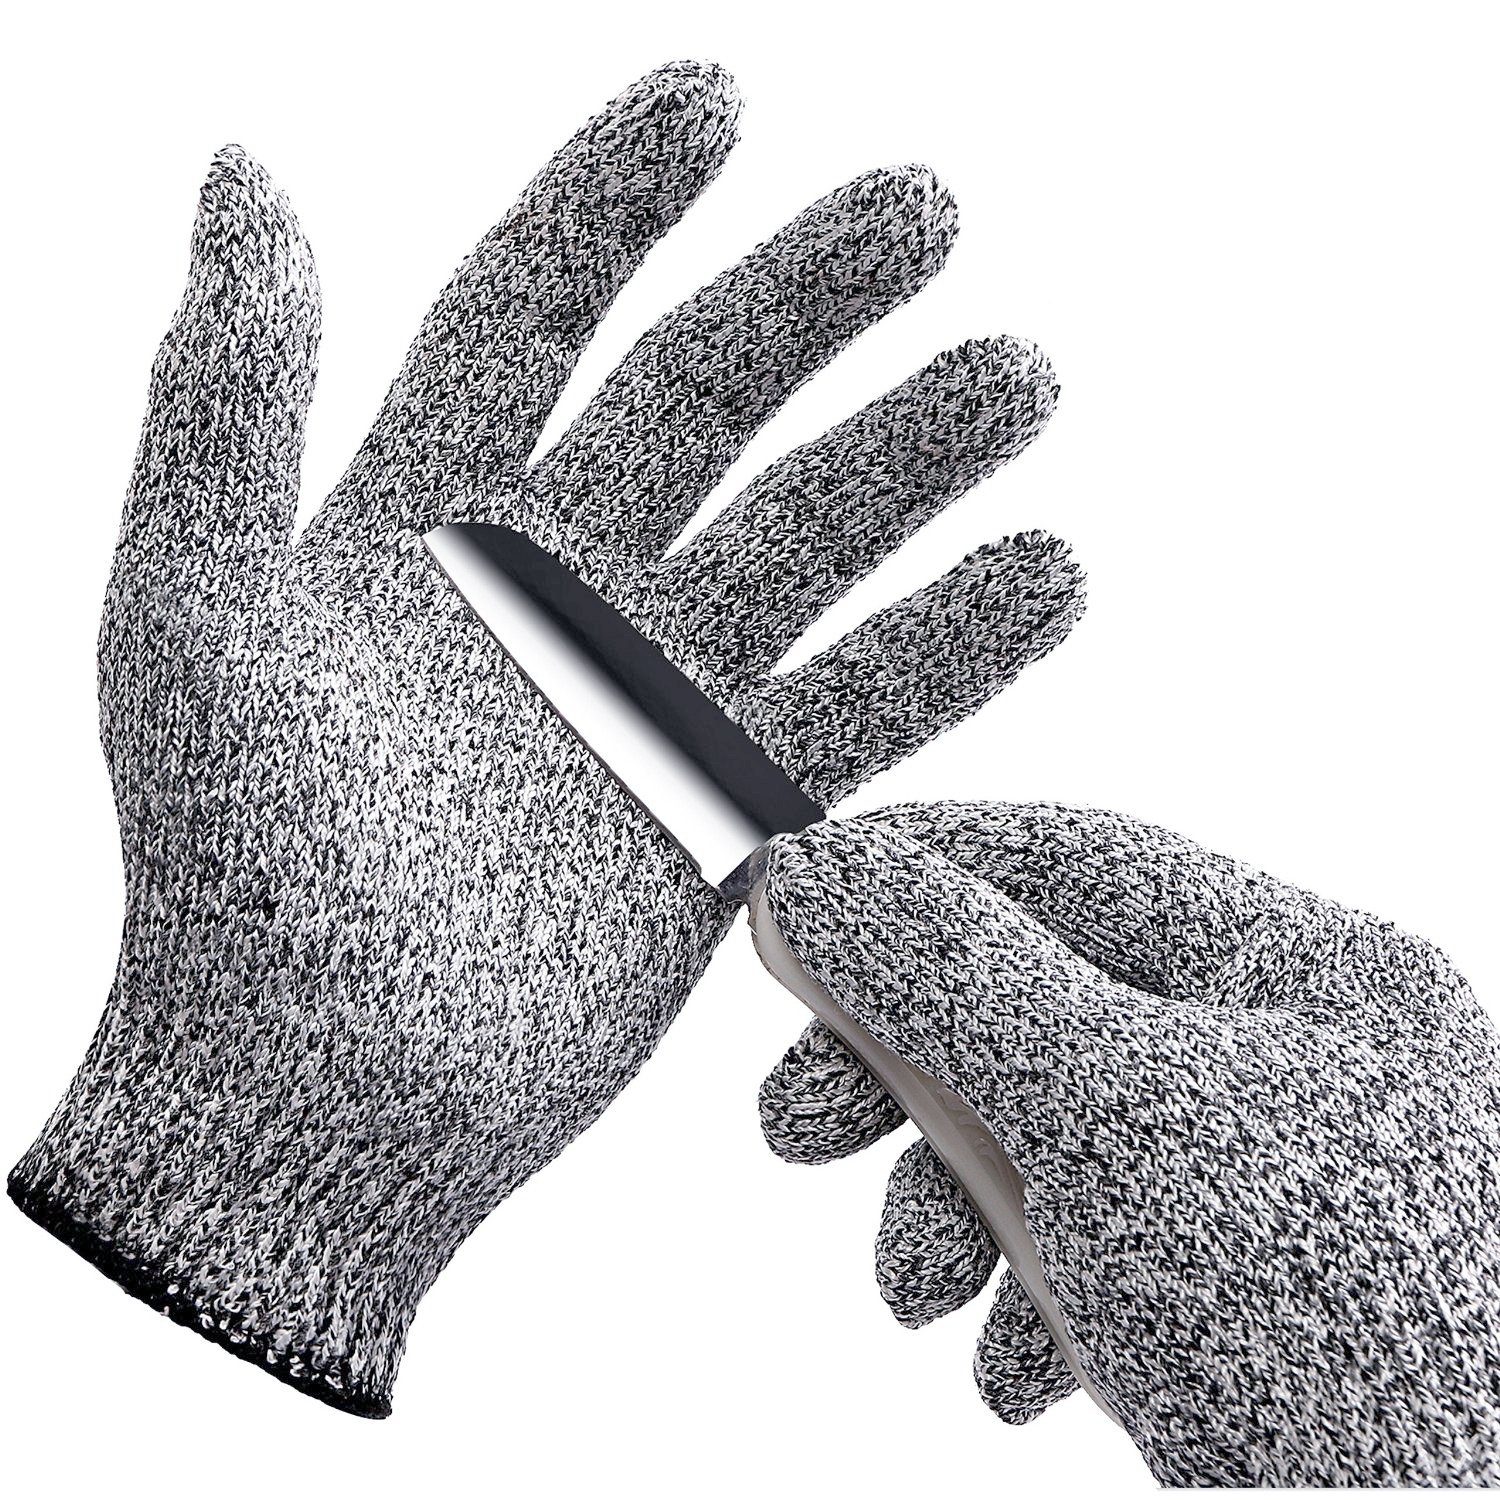 YiZYiF Cut Resistant Gloves Best Food Grade Kitchen Level 5 Cut Protection Knit Safety for Cooking, Working, Wood carving